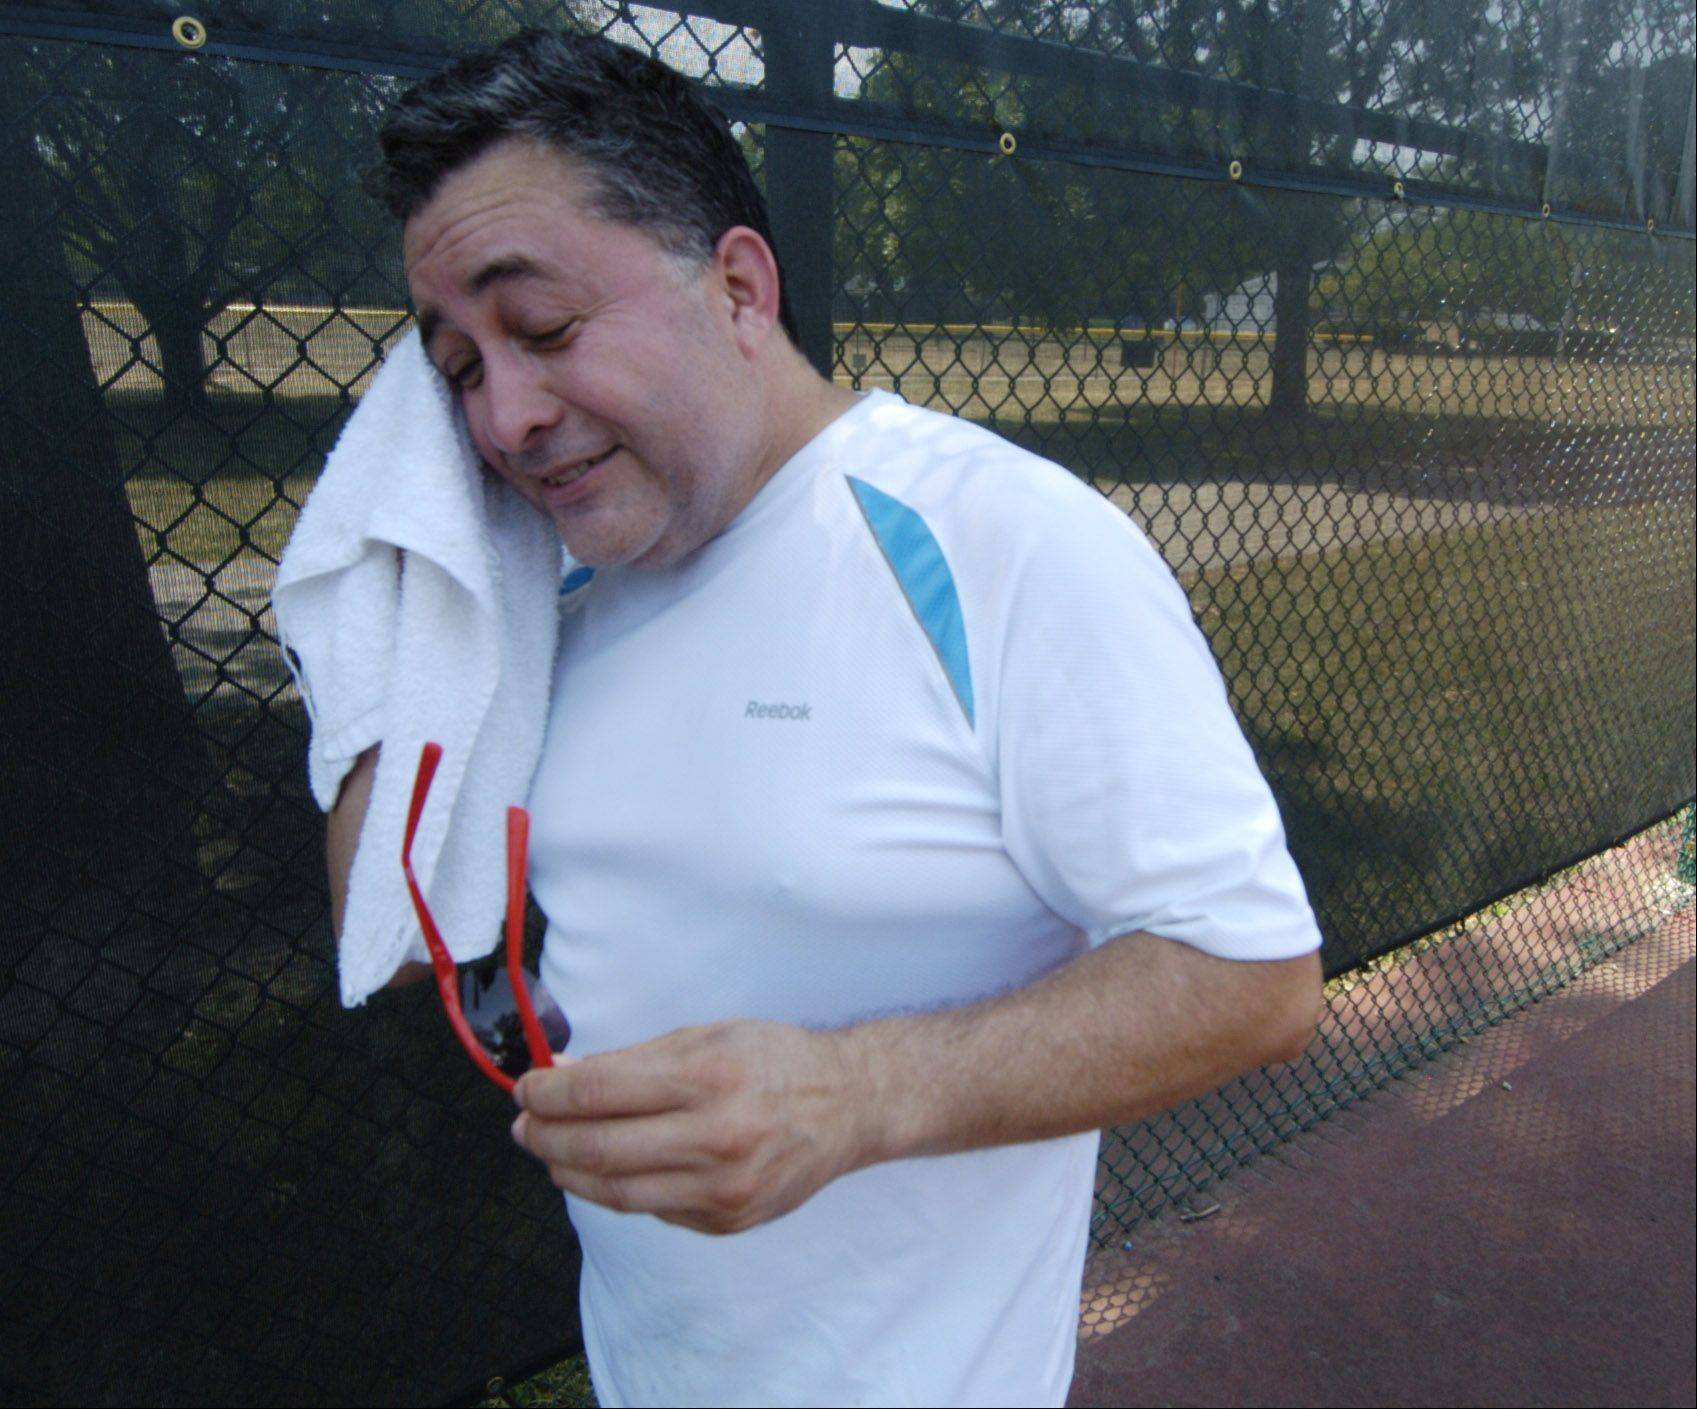 Honorio Vega, who lives in Highland Park and works in Des Plaines, wipes his forehead after playing tennis with a co-worker during the noon hour at Lions Park in Mount Prospect Friday.